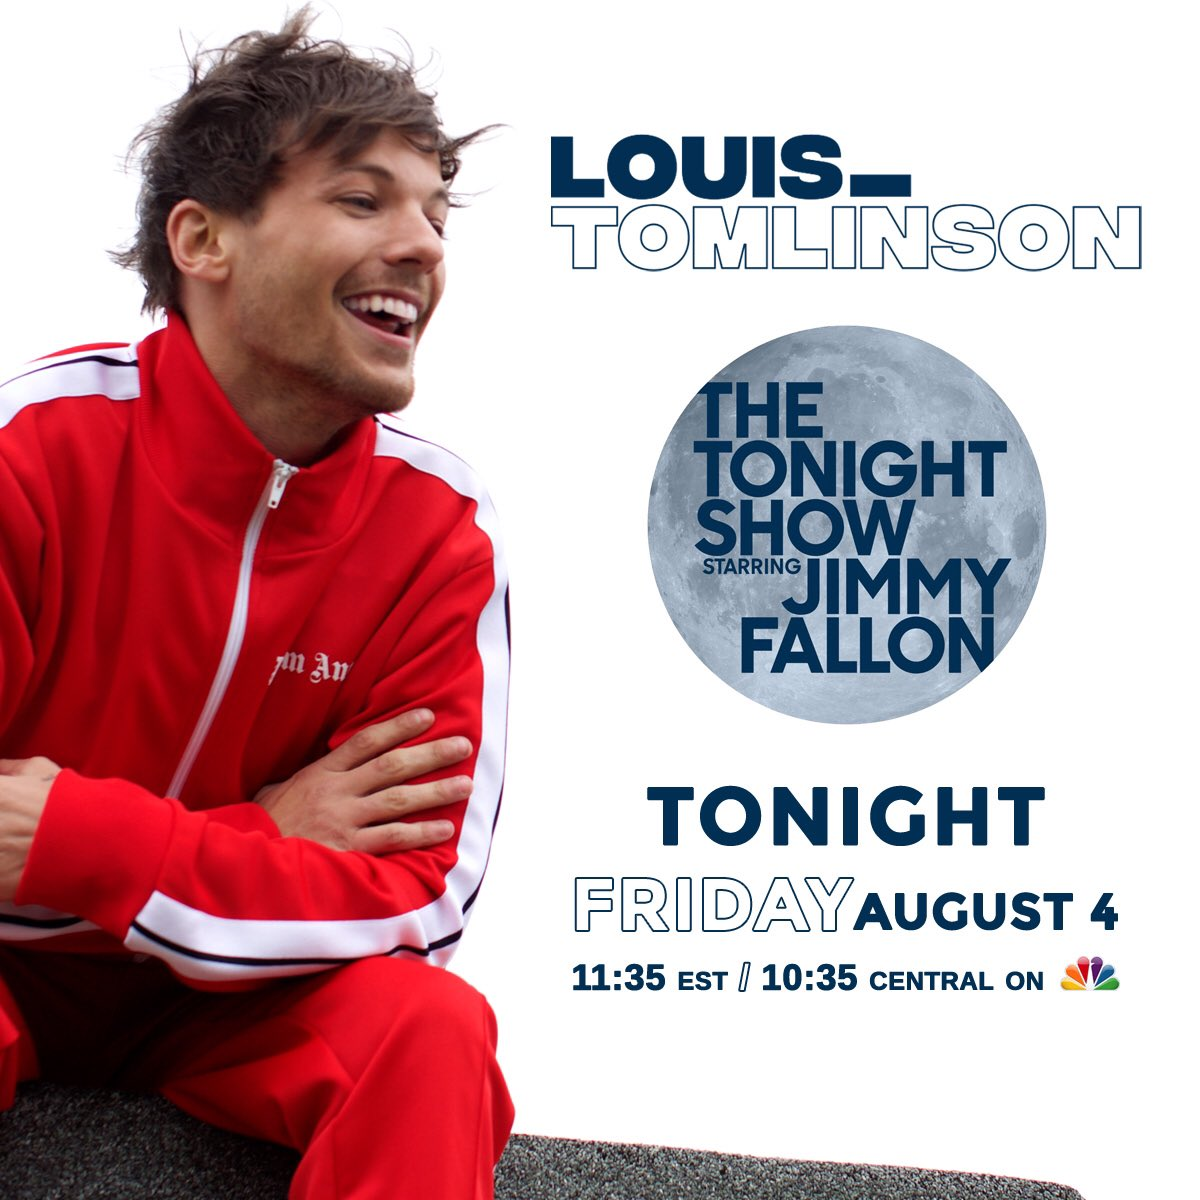 TONIGHT! Don't miss @Louis_Tomlinson performing 'Back To You' with @BebeRexha on @FallonTonight ������ https://t.co/zRa0mBH2Jb